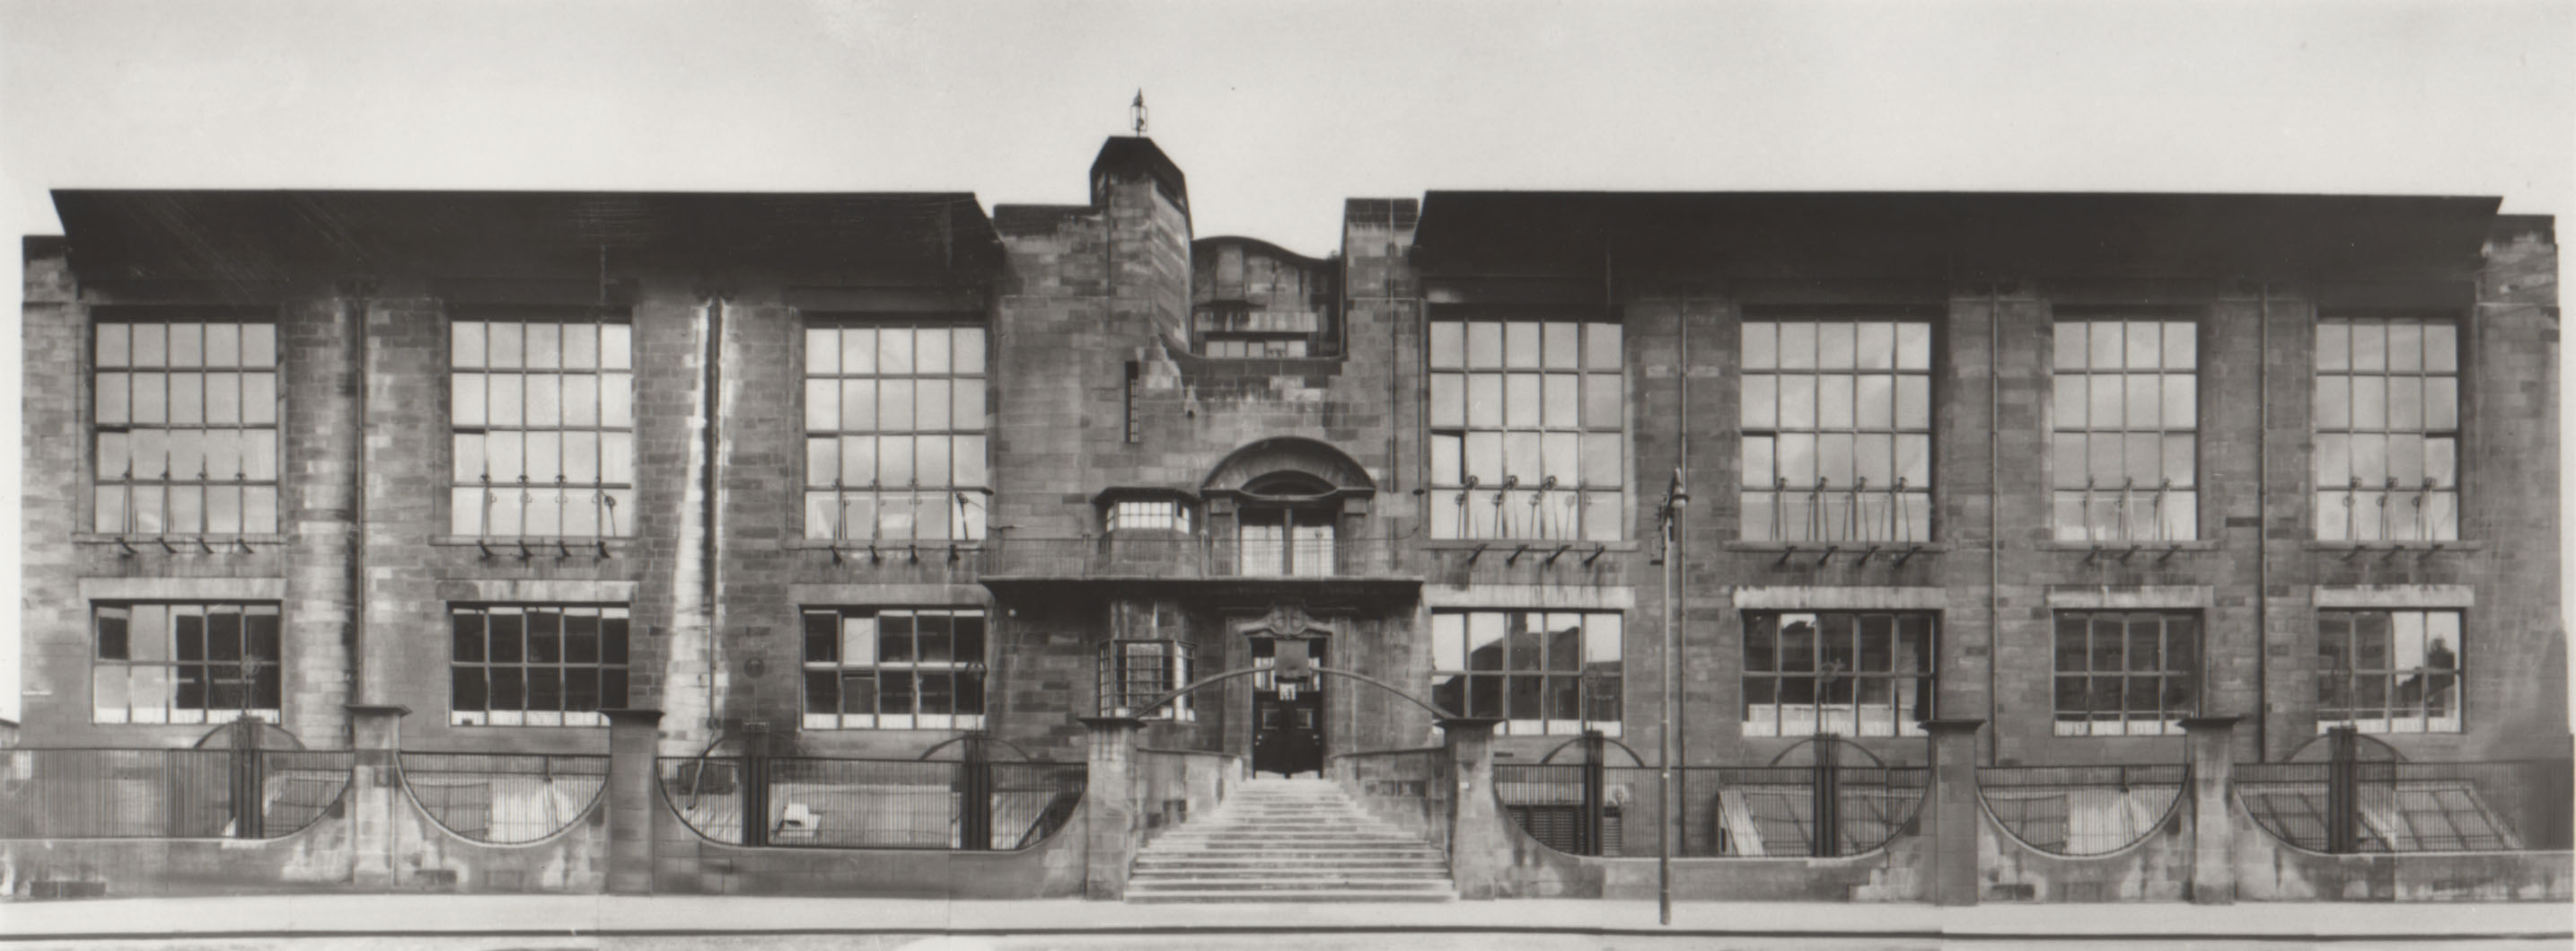 The Mackintosh Building